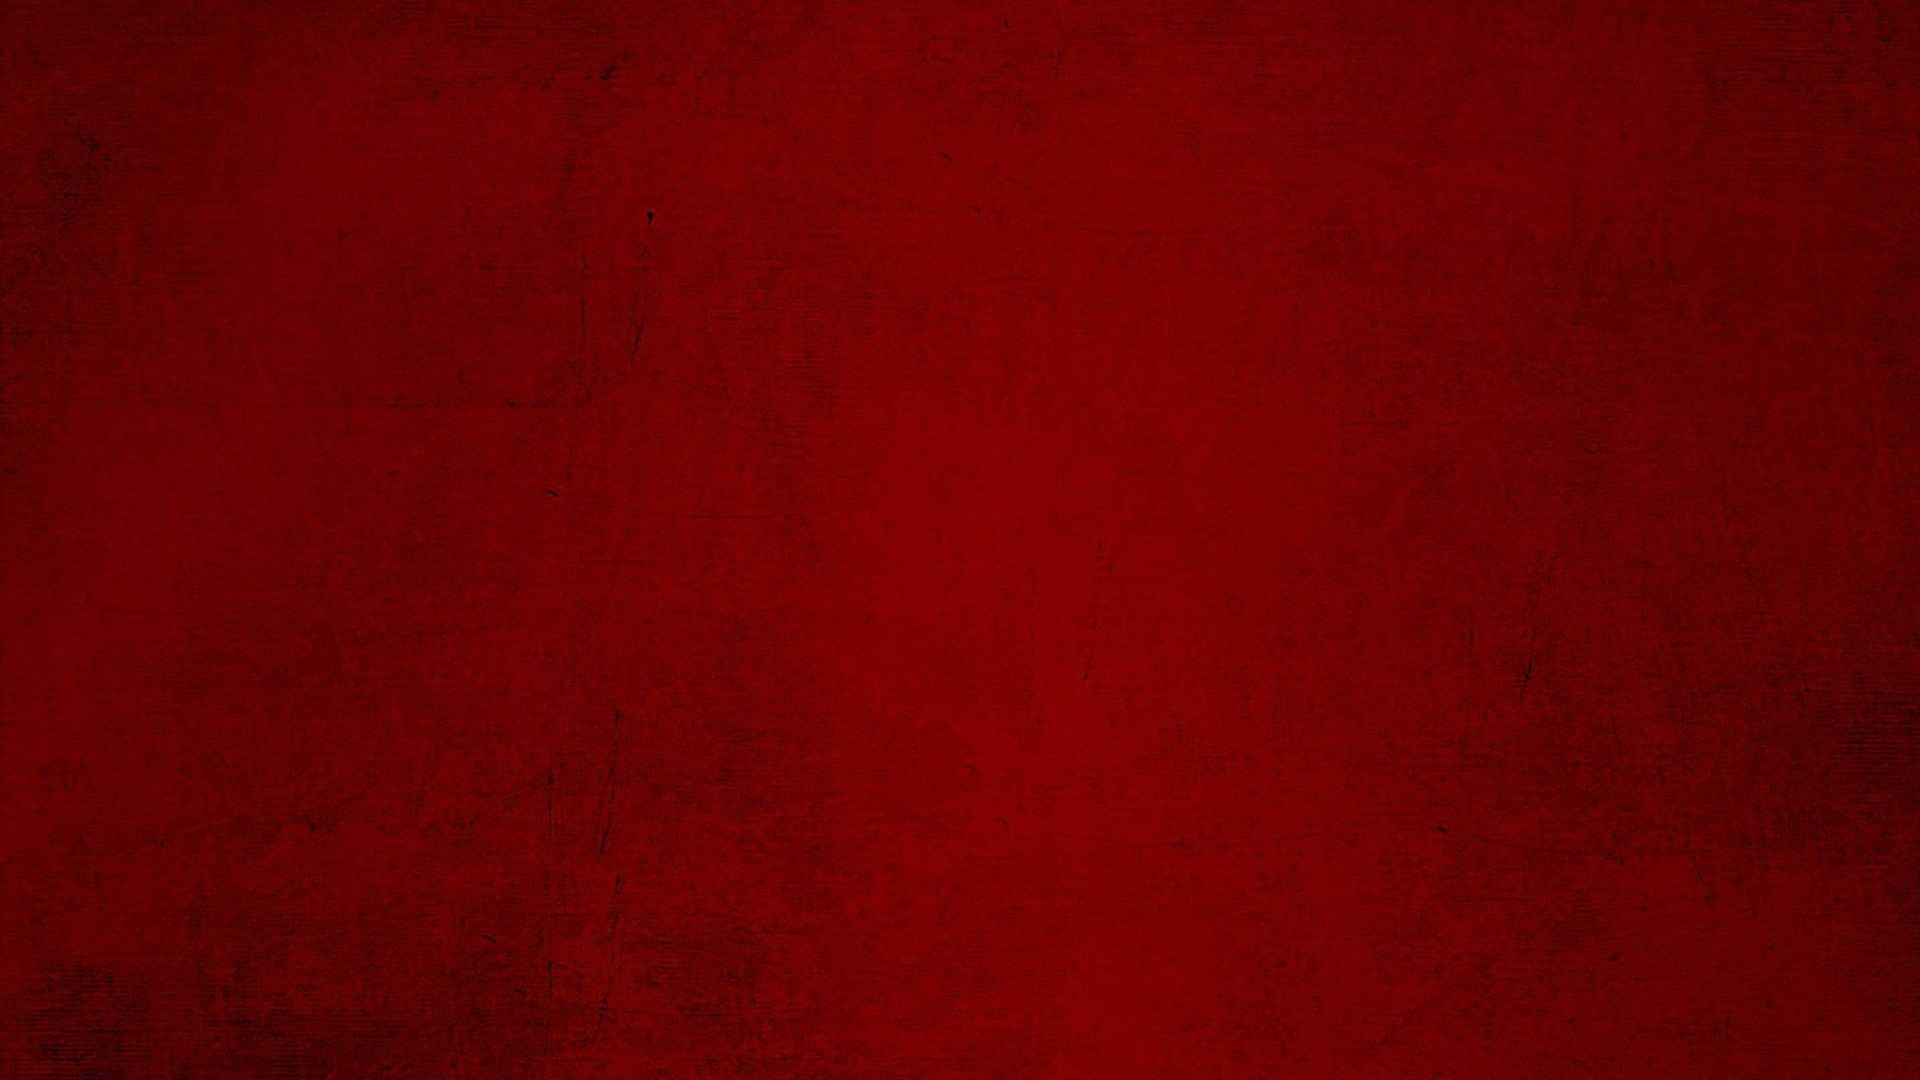 1920x1080 red abstract texture wallpapers - full HD backgrounds